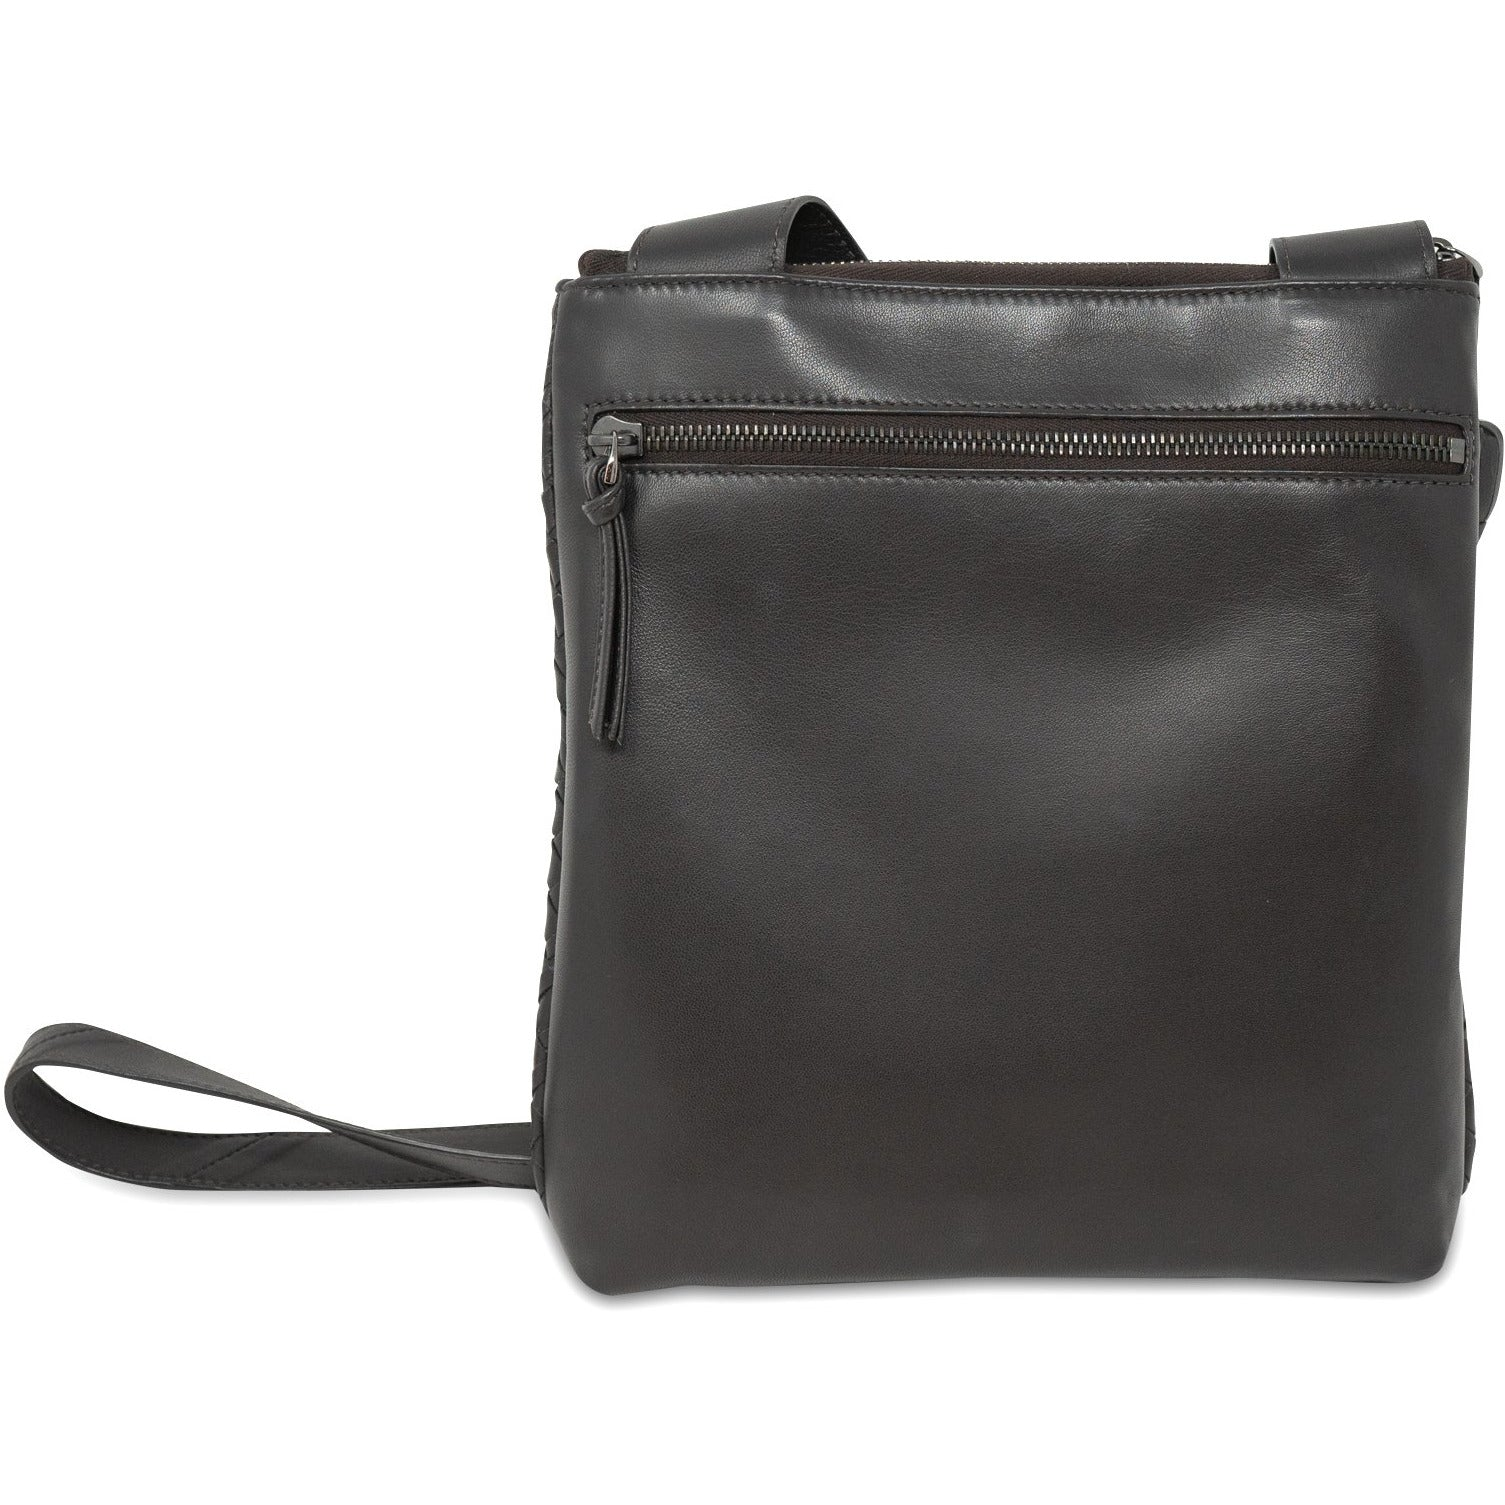 KIM Crossbody Women Bag in Nappa Testa di Moro (Dark Brown) - Jennifer Tattanelli